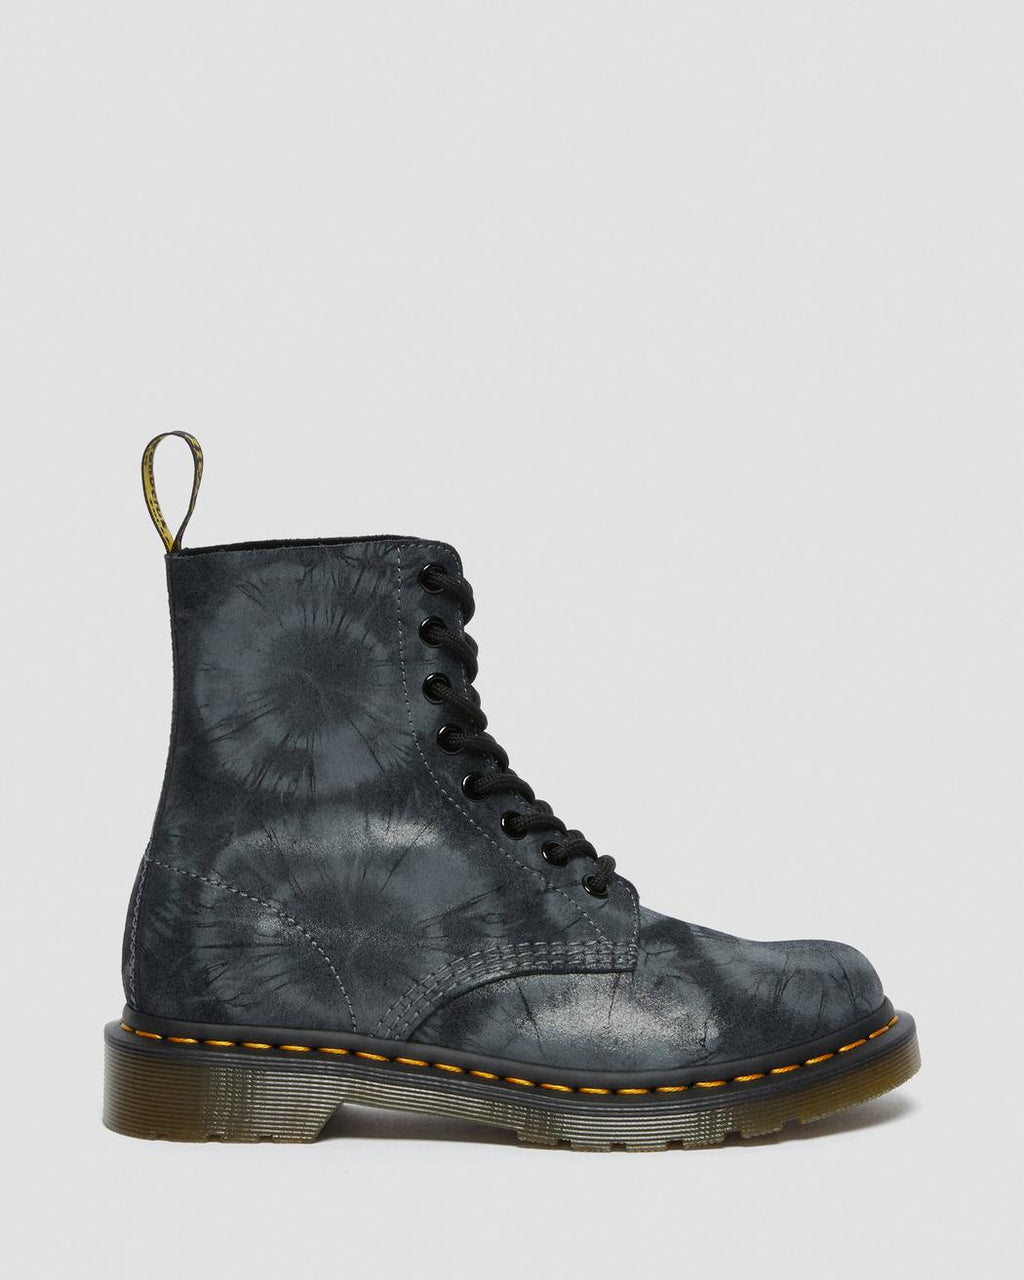 DR MARTENS 1460 PASCAL TIE DYE BOOT